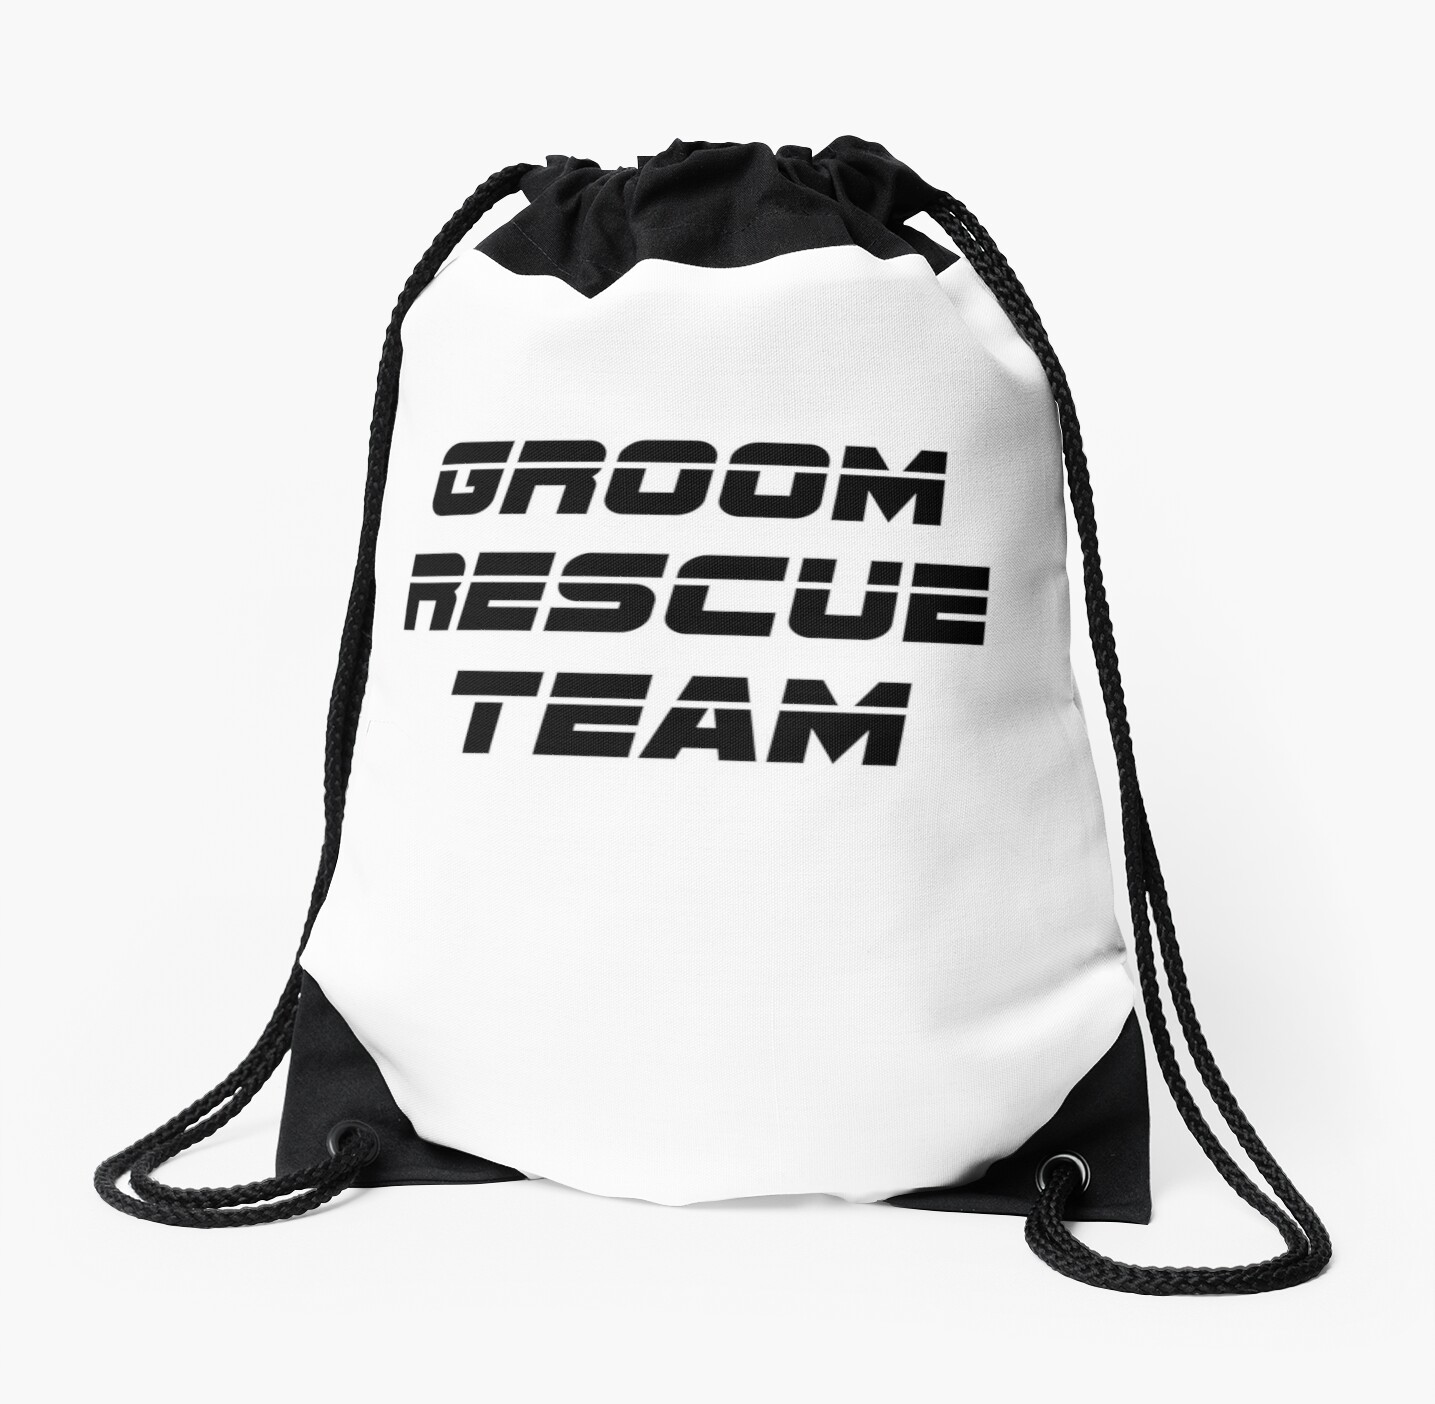 Groom Rescue Team V3 by TeeTimeGuys